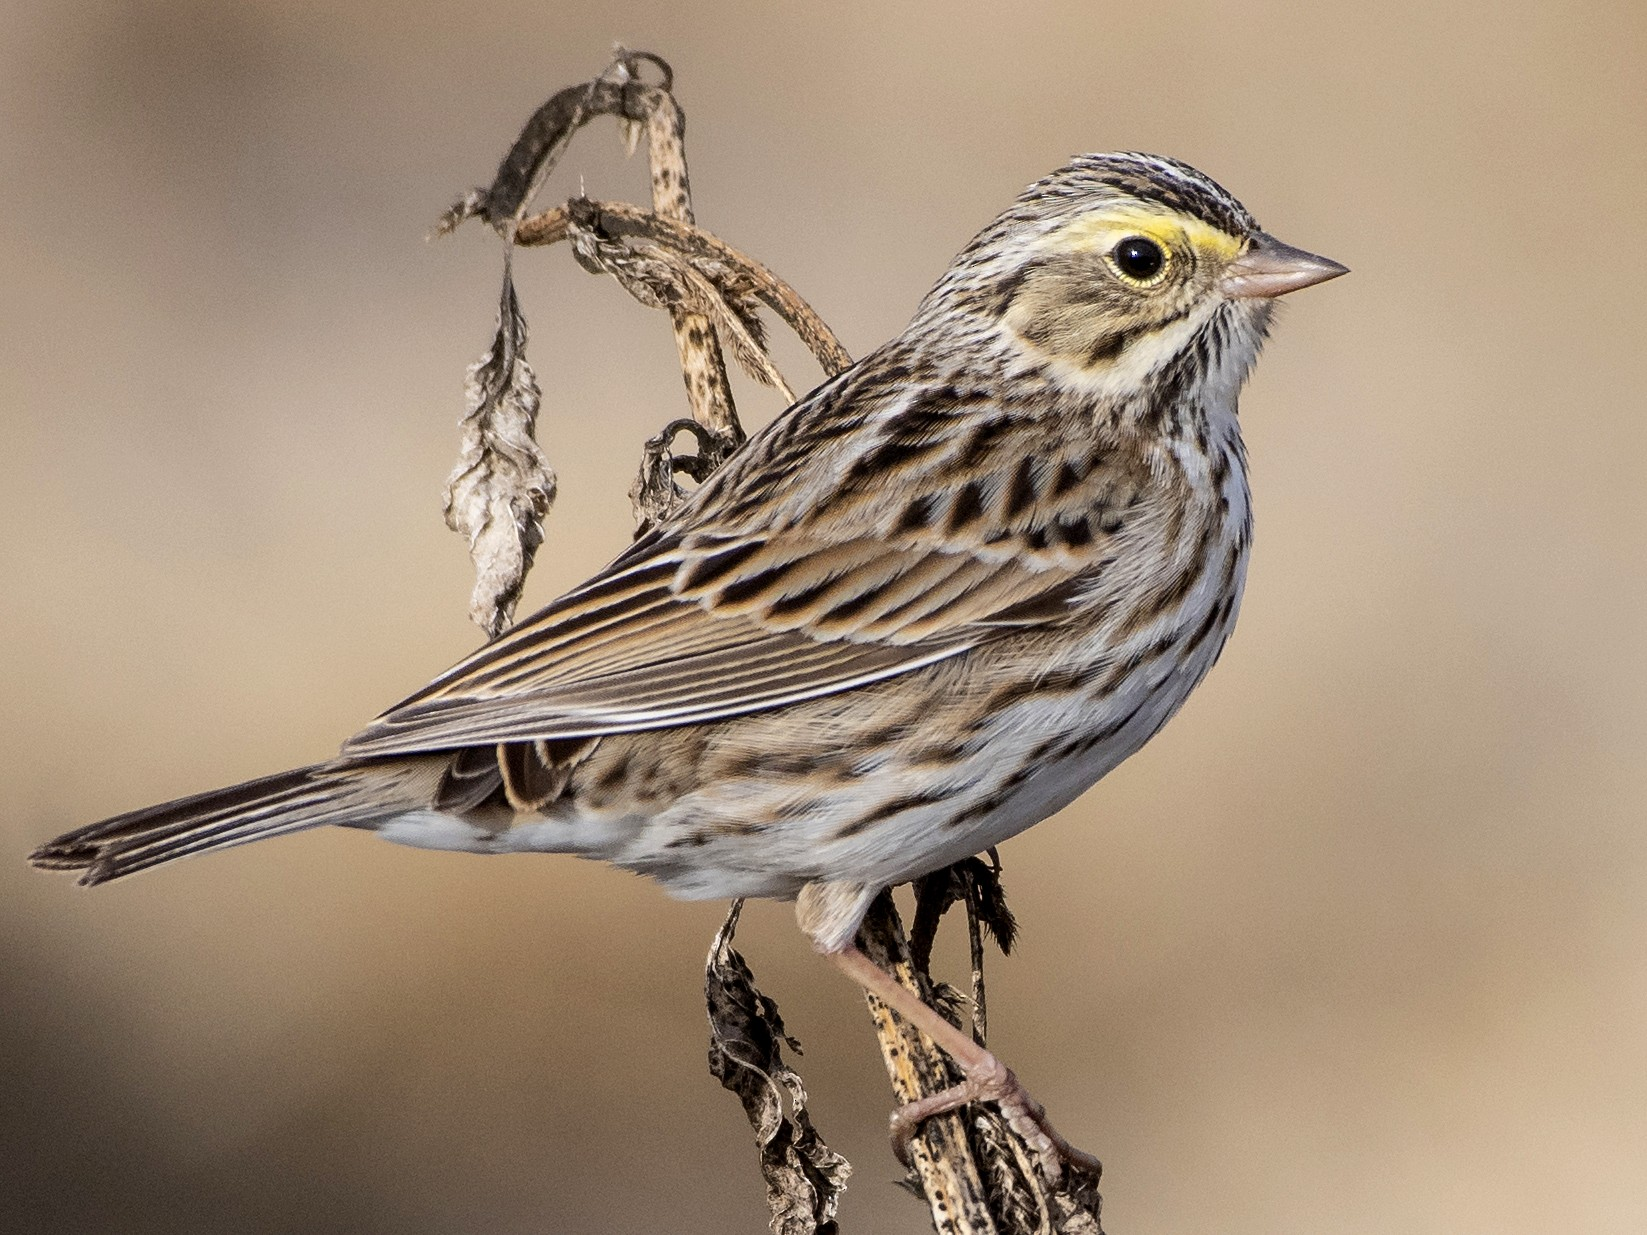 Savannah Sparrow - Bryan Calk